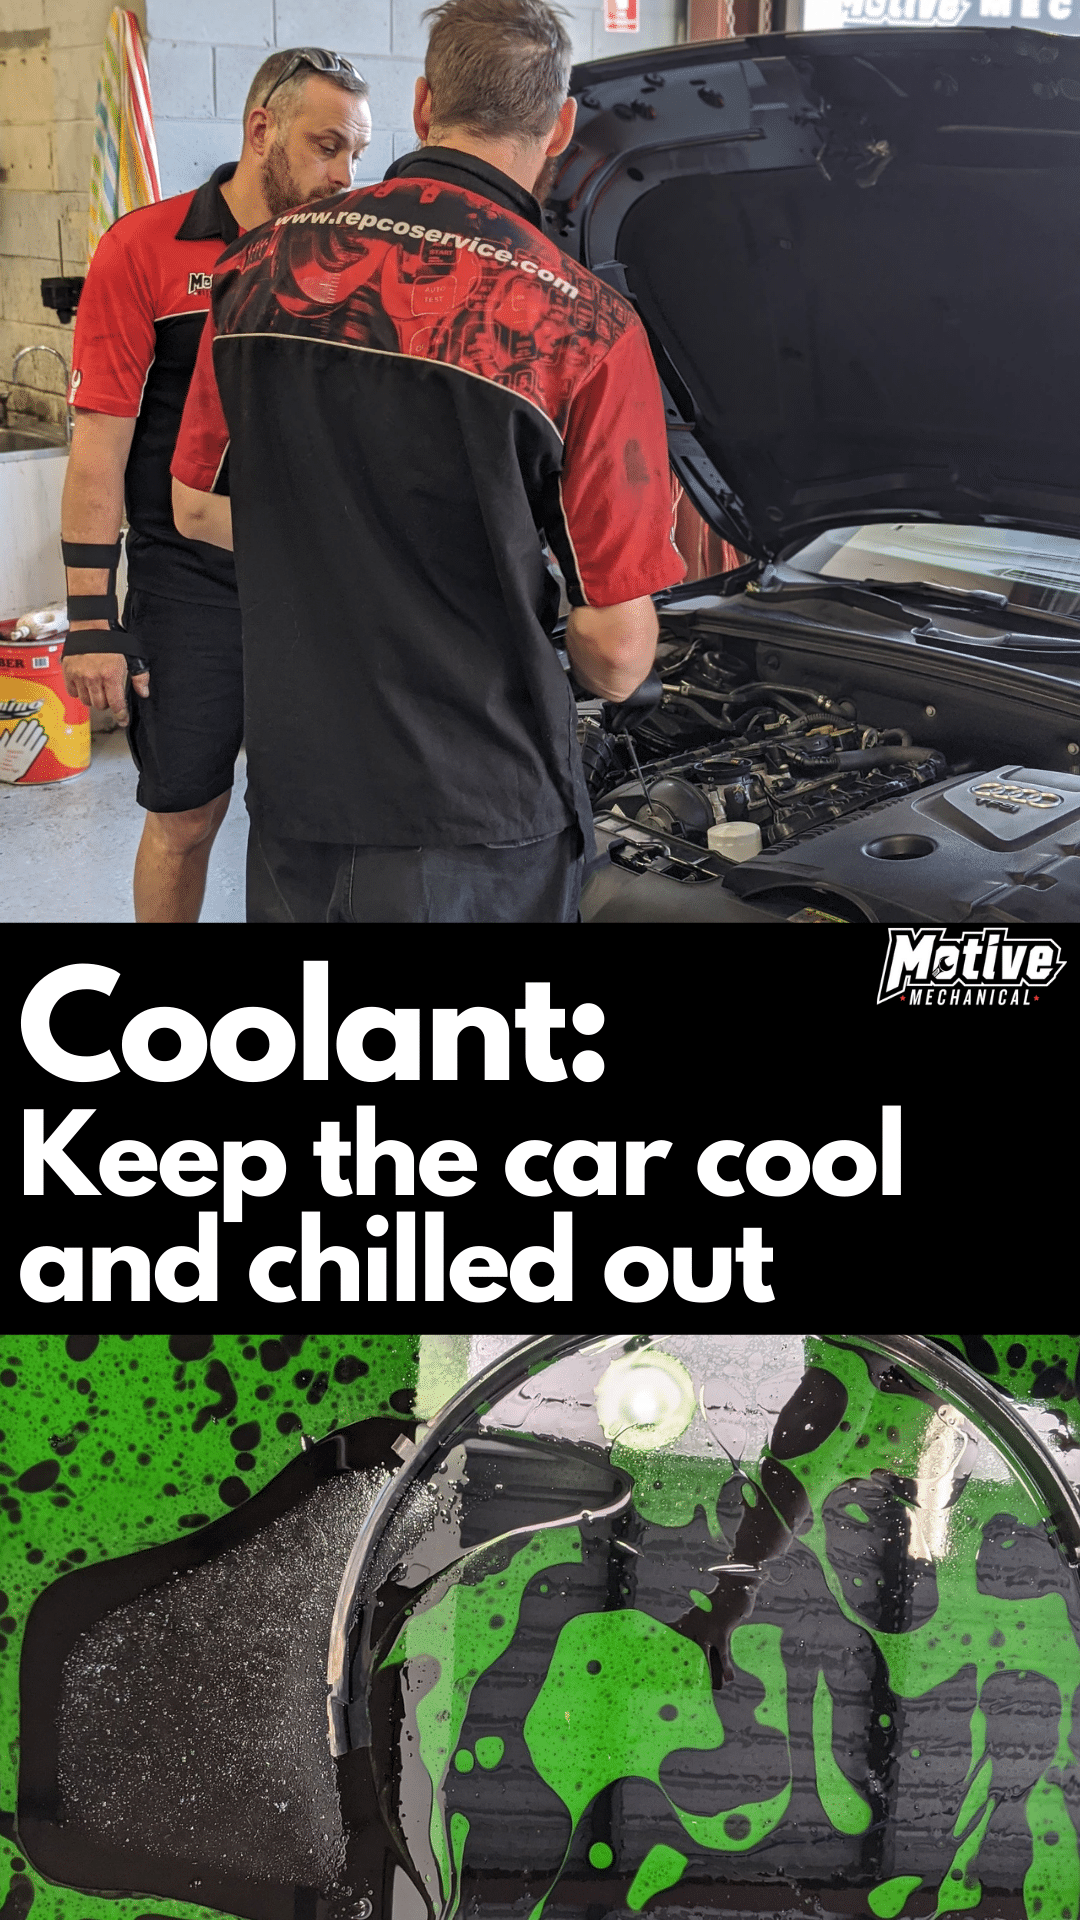 coolant-keep-your-car-cool-and-chilled-out-motive-mechanical